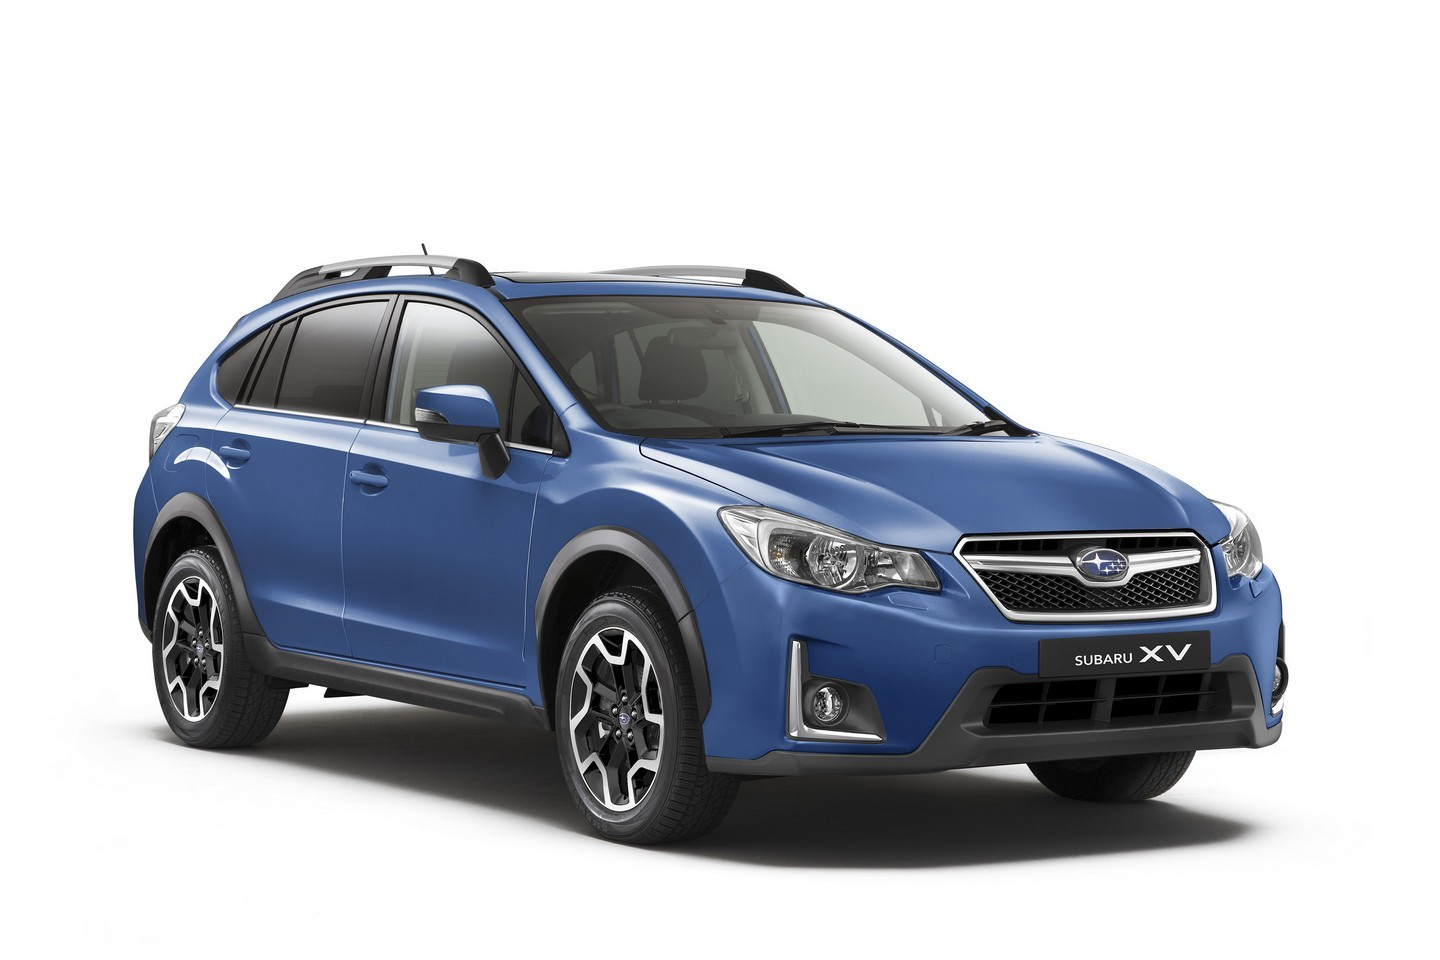 2016 subaru xv gains new features in uk price capped at. Black Bedroom Furniture Sets. Home Design Ideas